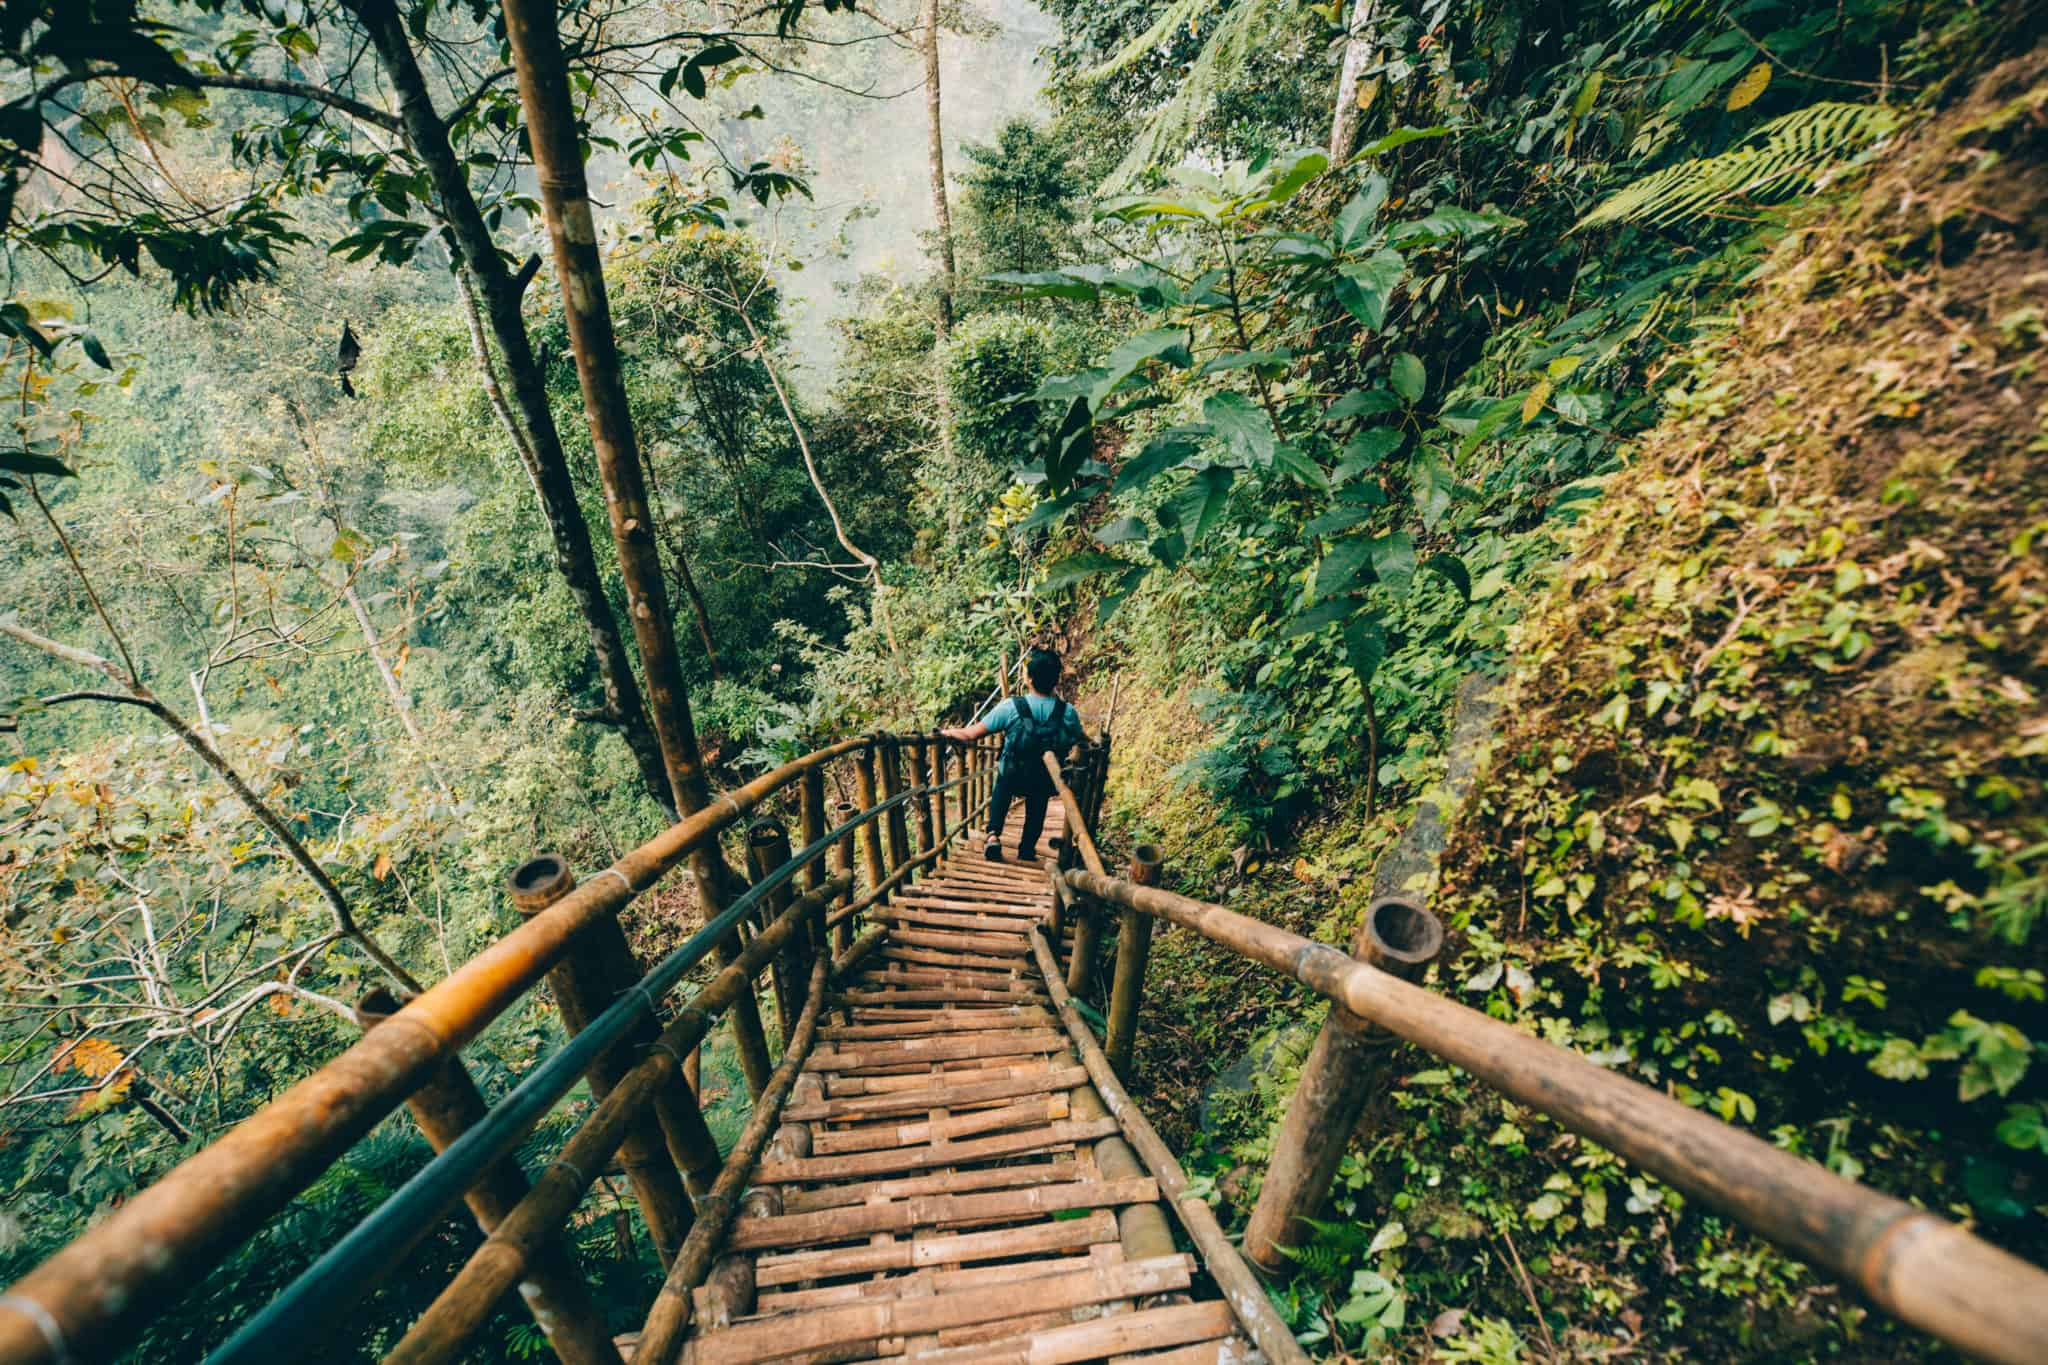 Berty climbing down bamboo stairs at Tumpak Sewu waterfall